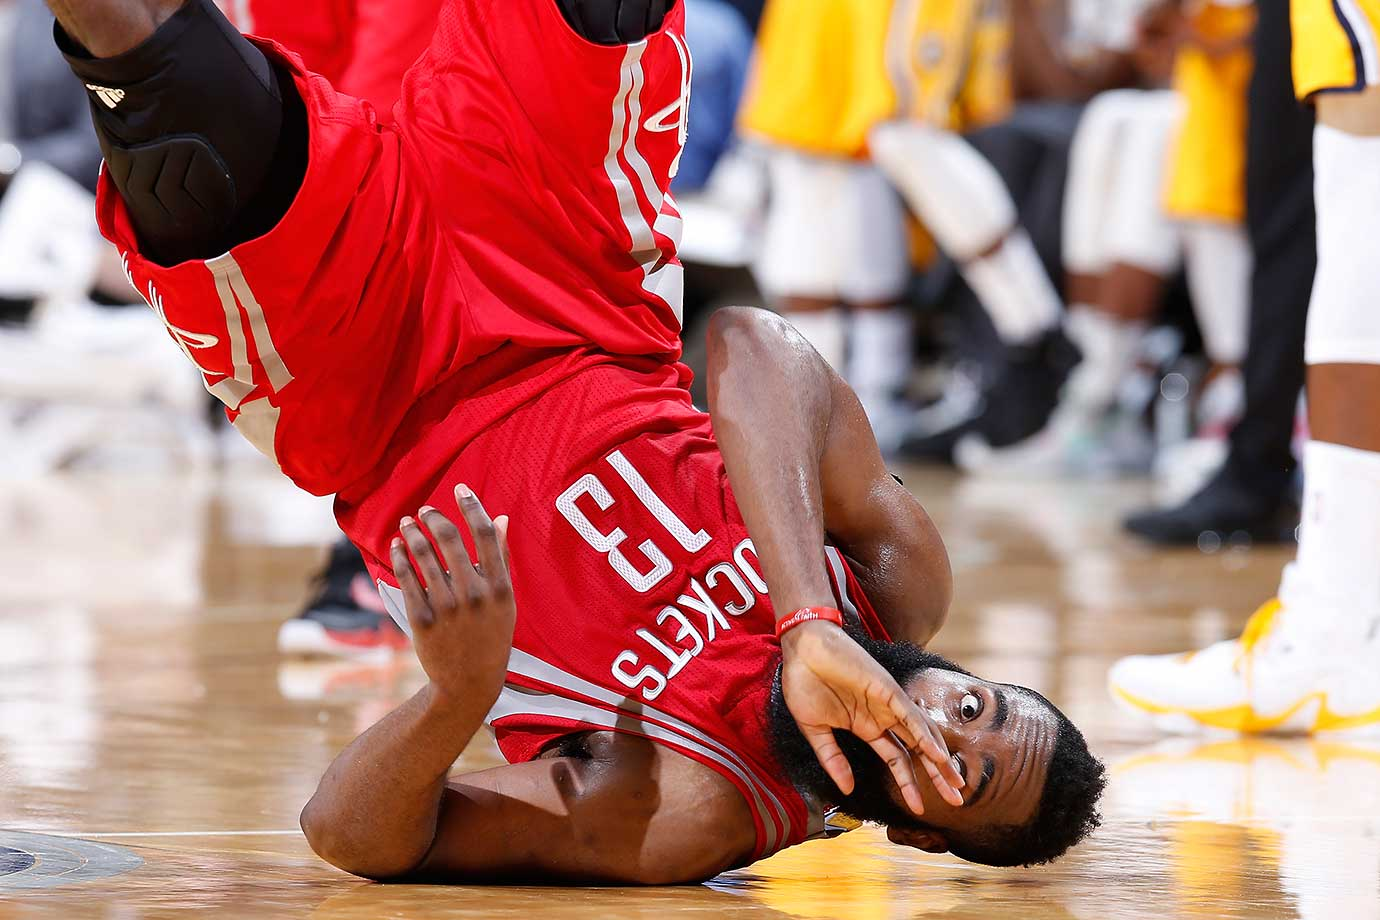 James Harden of the Houston Rockets falls over after drawing a foul against the Indiana Pacers.